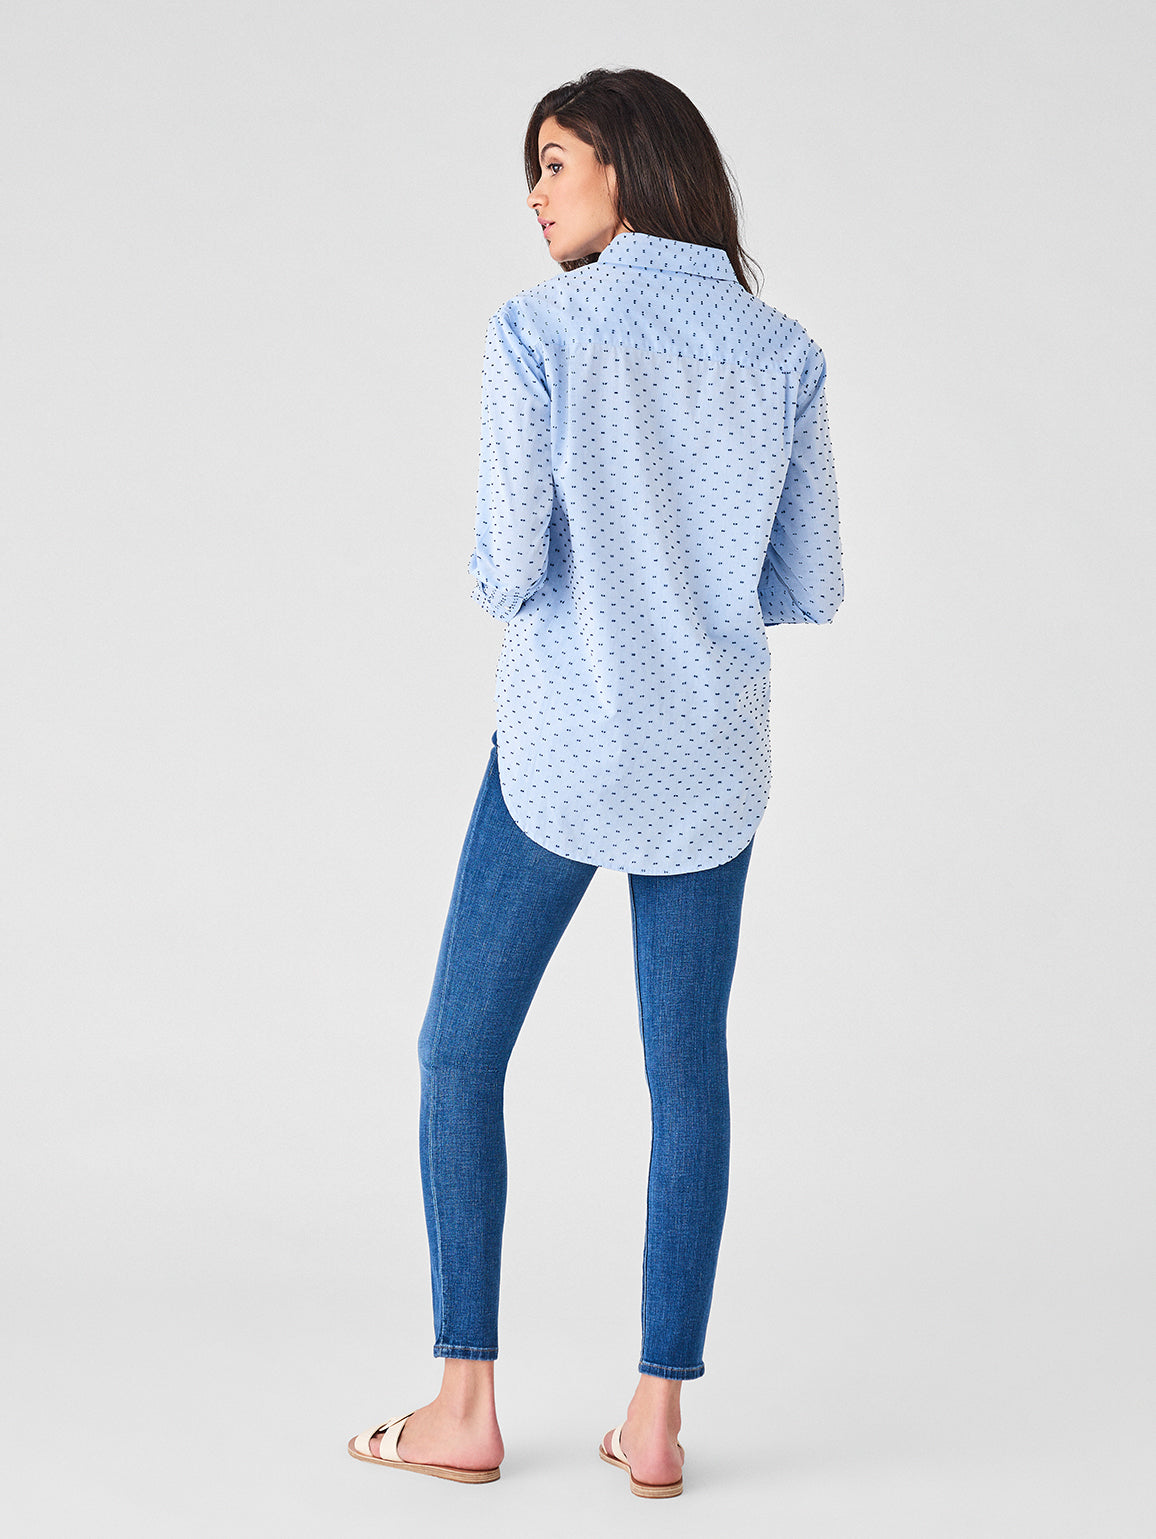 Shirt - Metropolitan Top | Blue Dotted - DL1961